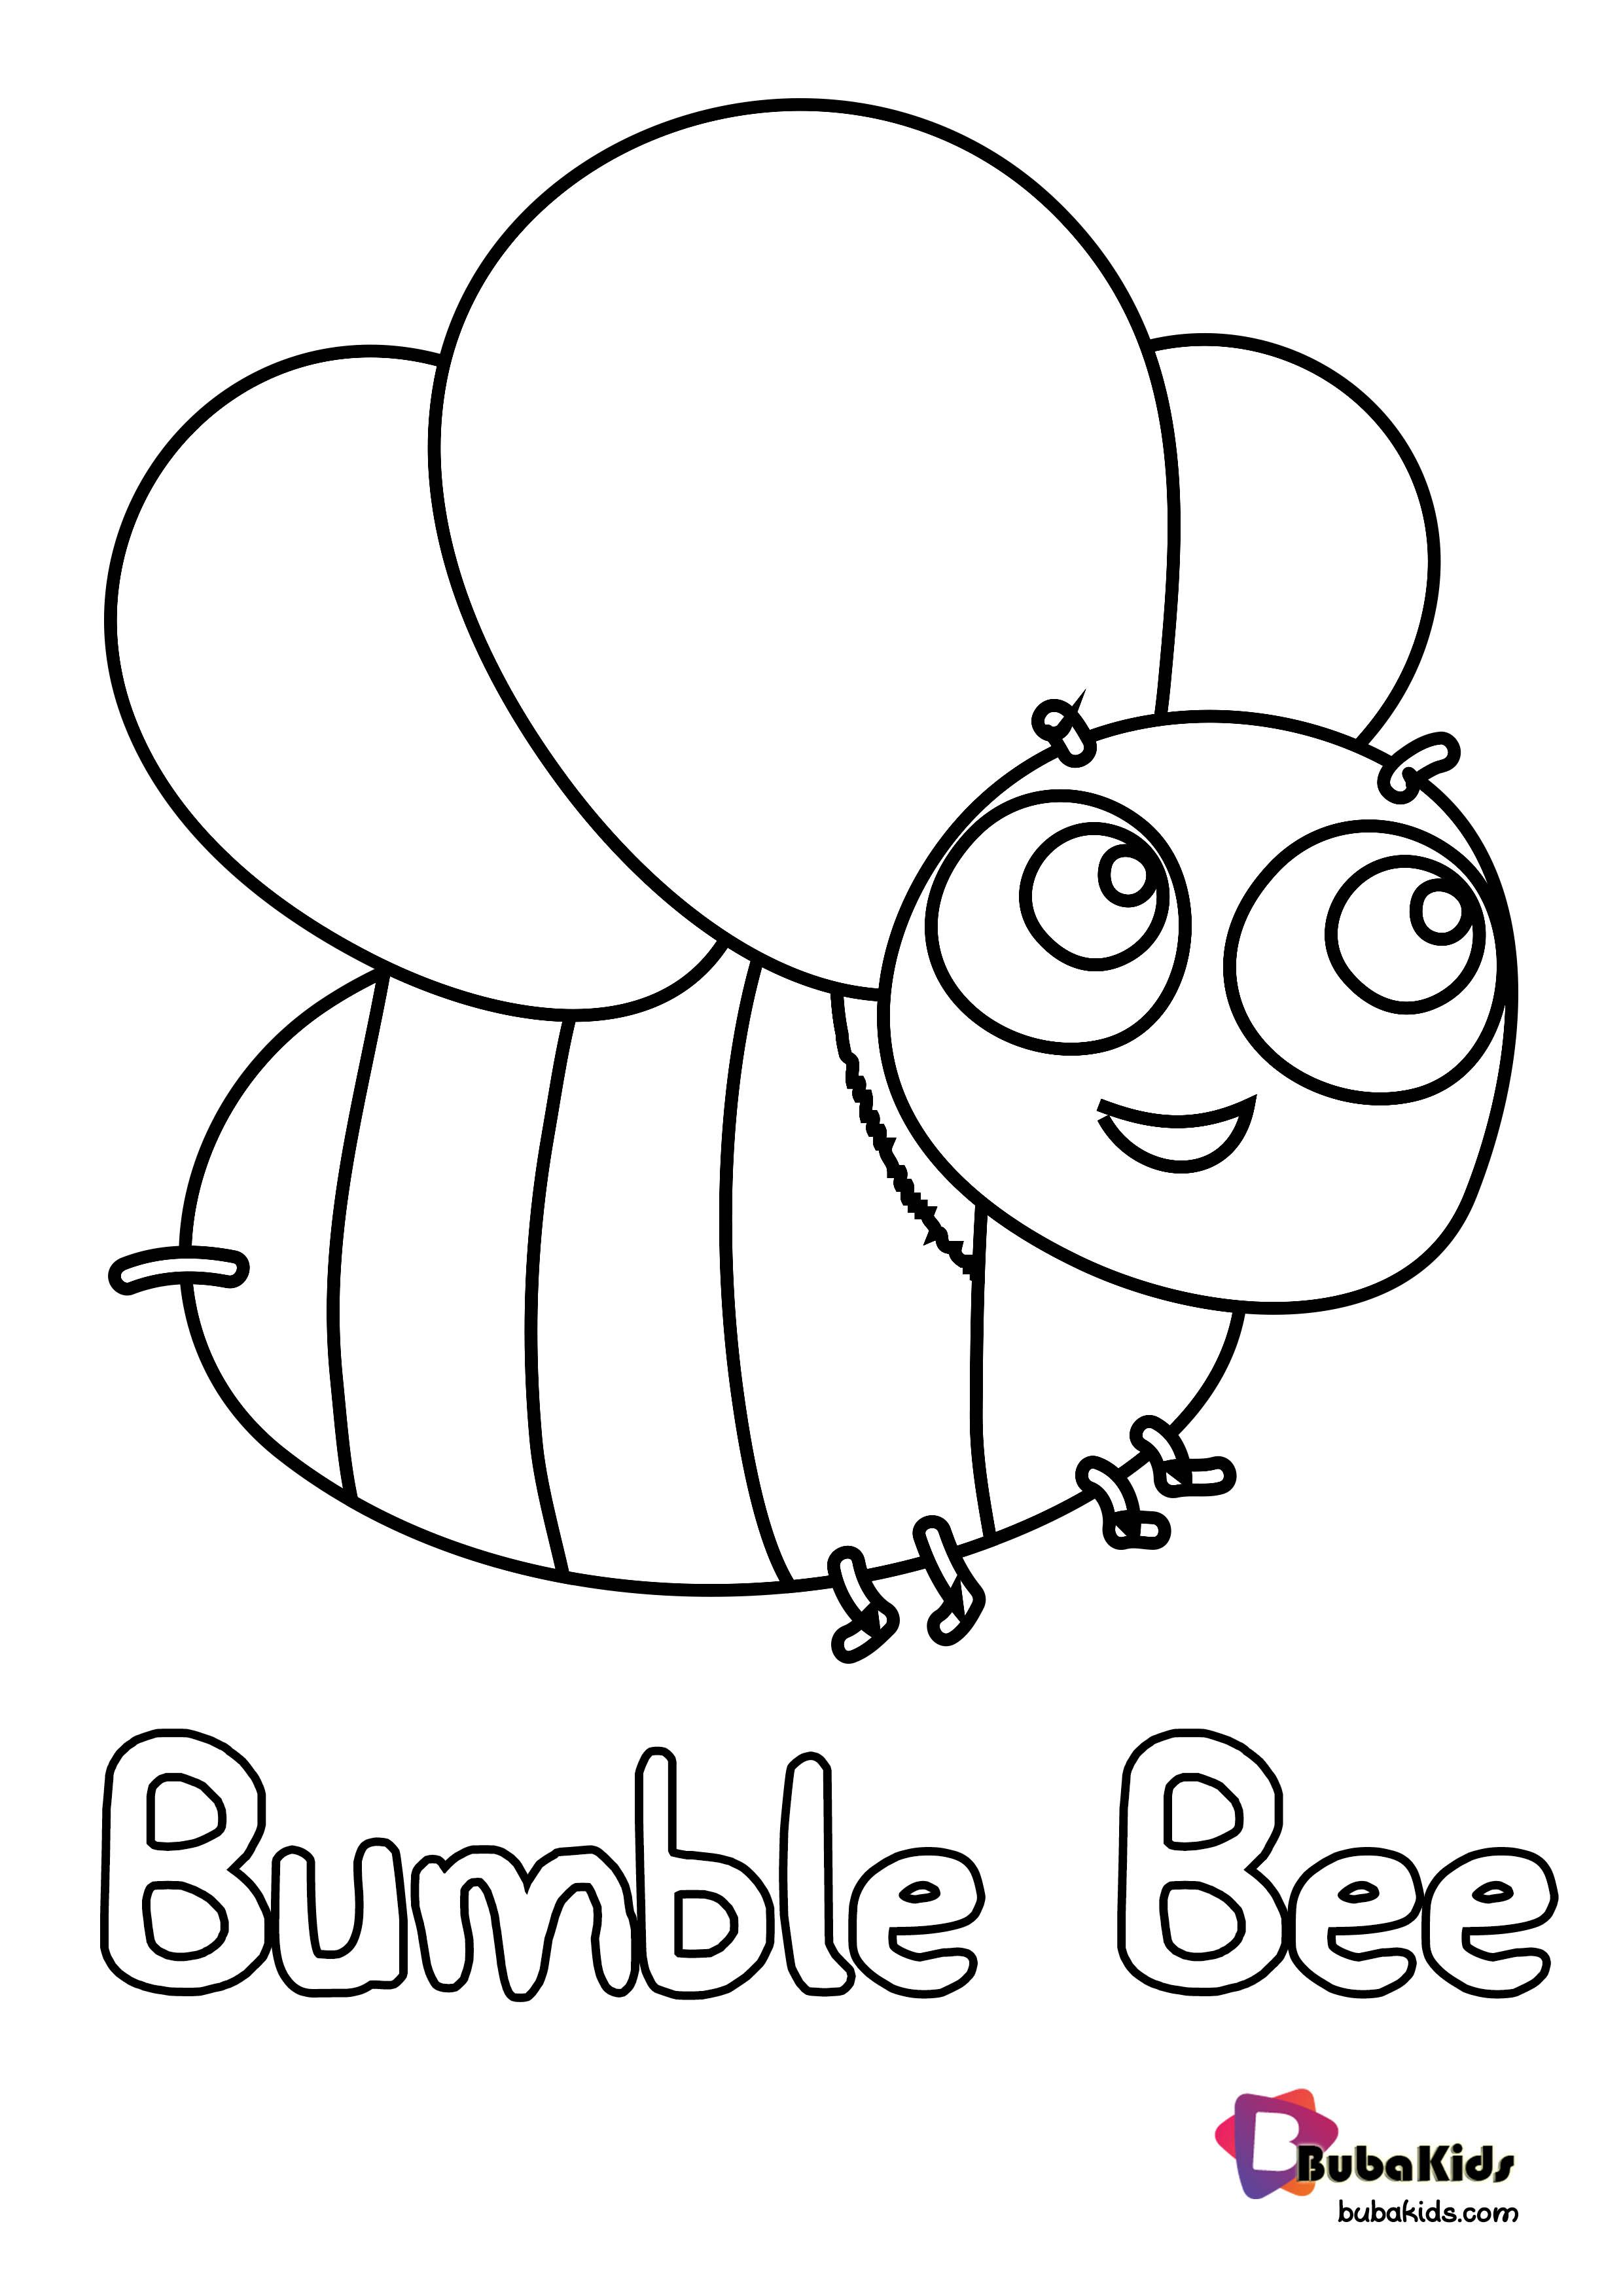 Bumble Bee Coloring Page Bubakids Animalcoloring Bumblebee Animal Coloring Pages Bee Coloring Pages Coloring Pages Animal Coloring Pages